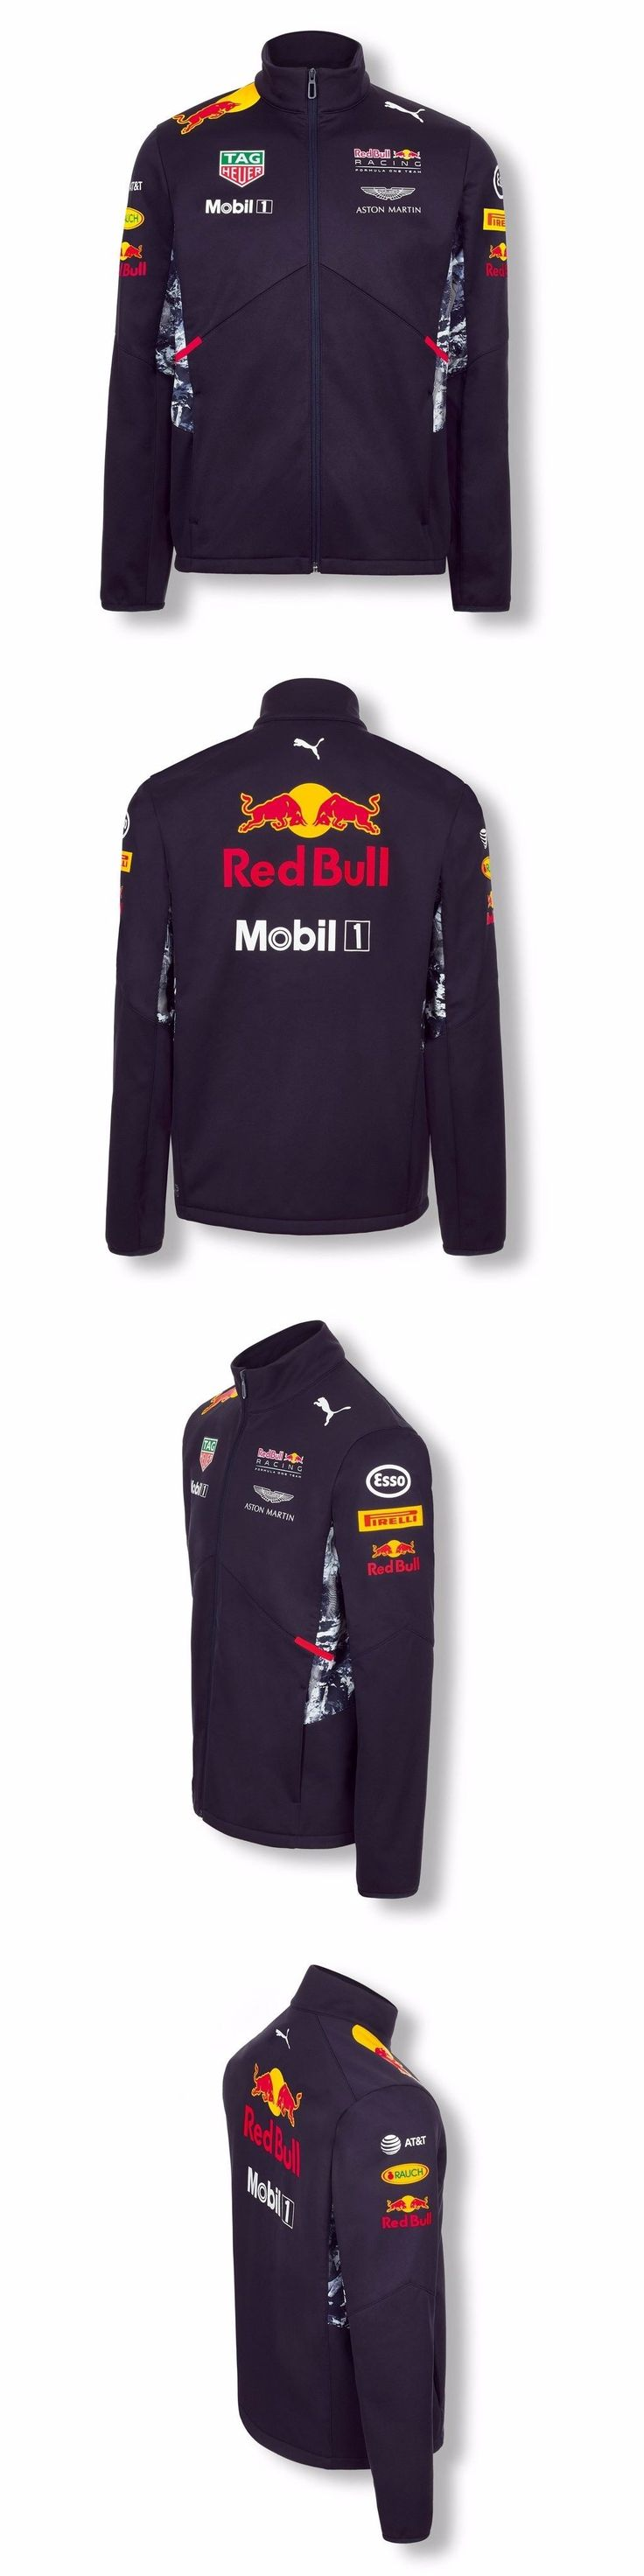 Racing-Formula 1 2876: Jacket Softshell Coat Puma Red Bull Racing Team 2017 Formula One 1 F1 New Us -> BUY IT NOW ONLY: $150 on eBay!